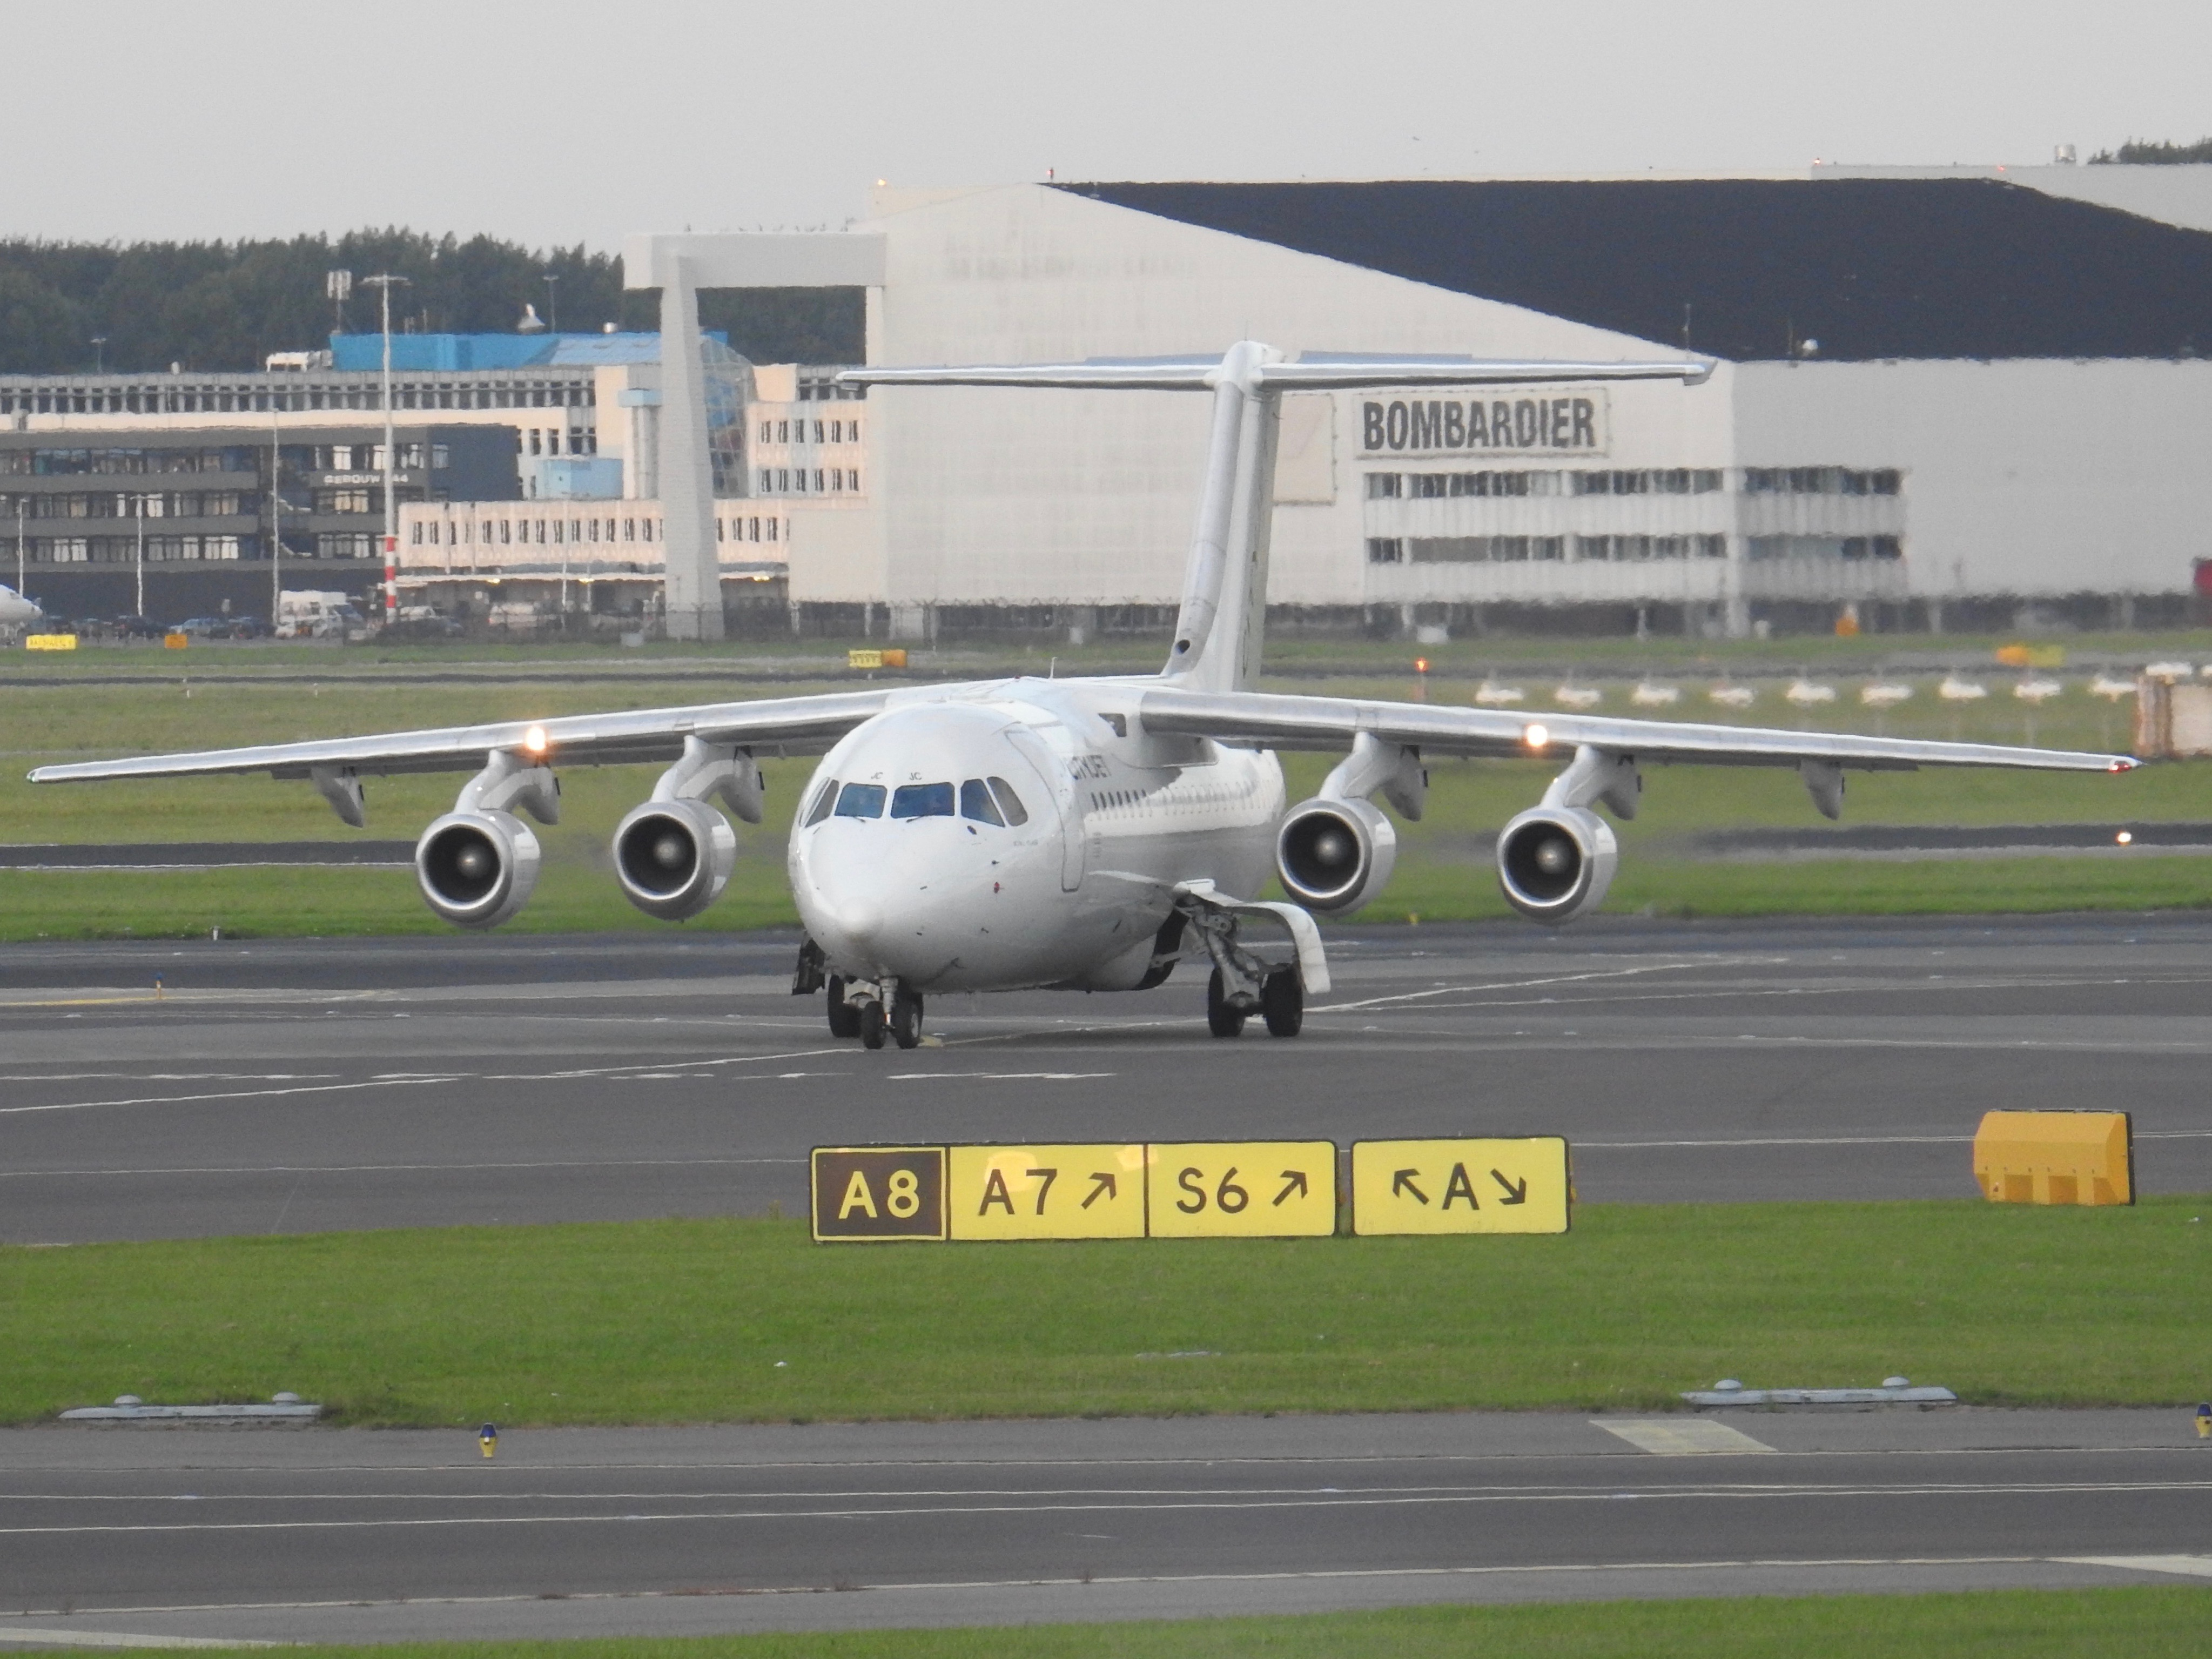 Revitalizing the Avro: Why the BAe 146 is Sticking Around